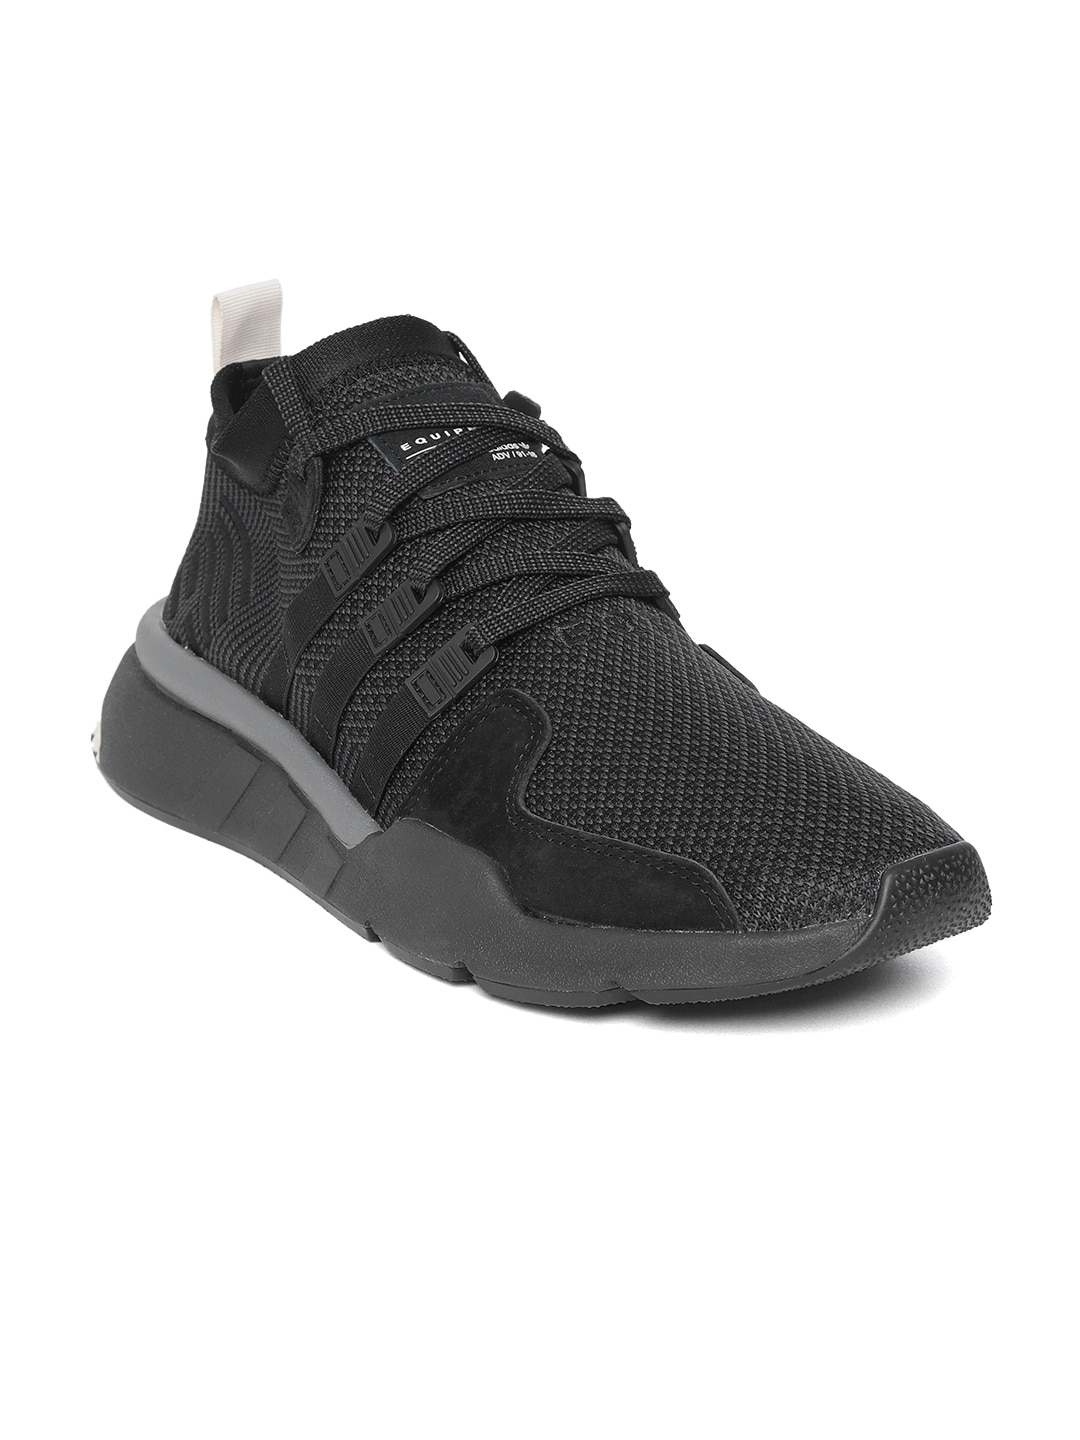 7685c637a64832 adidas - Exclusive adidas Online Store in India at Myntra